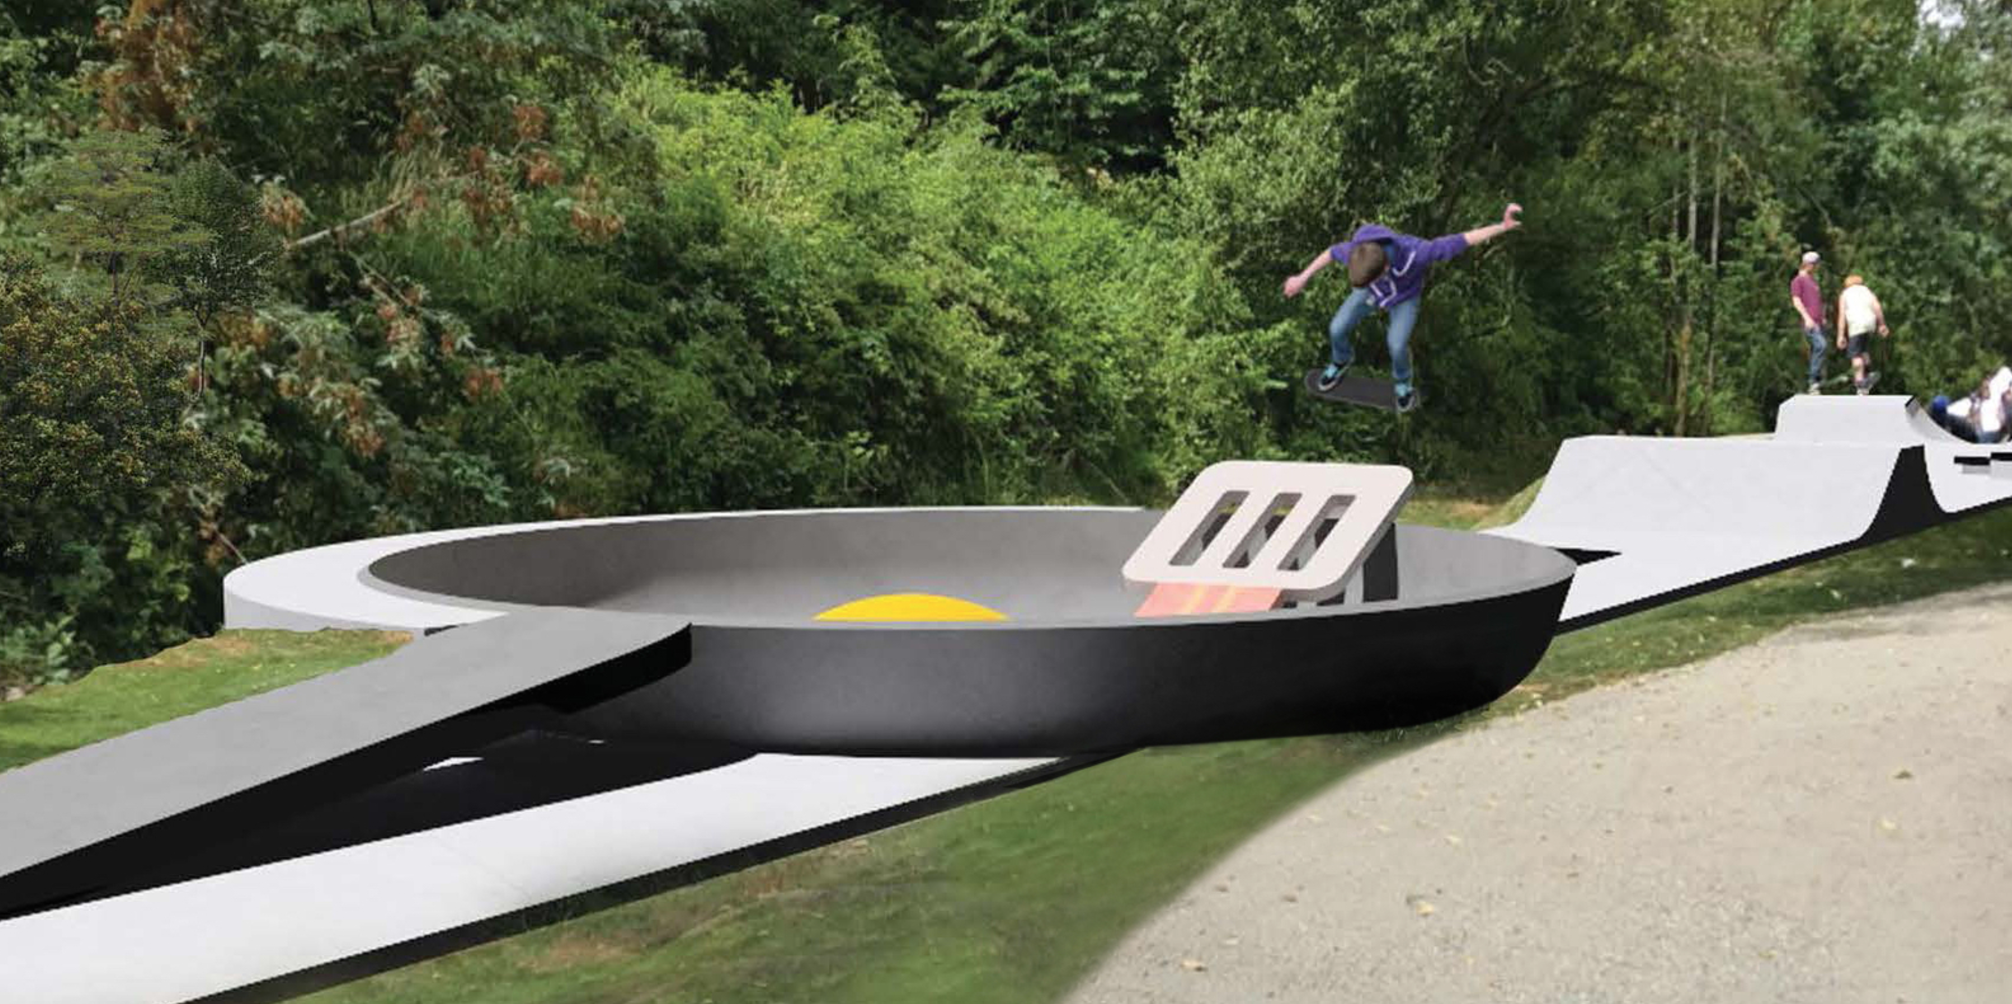 EC: A Giant Eggs-and-Bacon-Themed Skatepark Might Be Coming to Washington